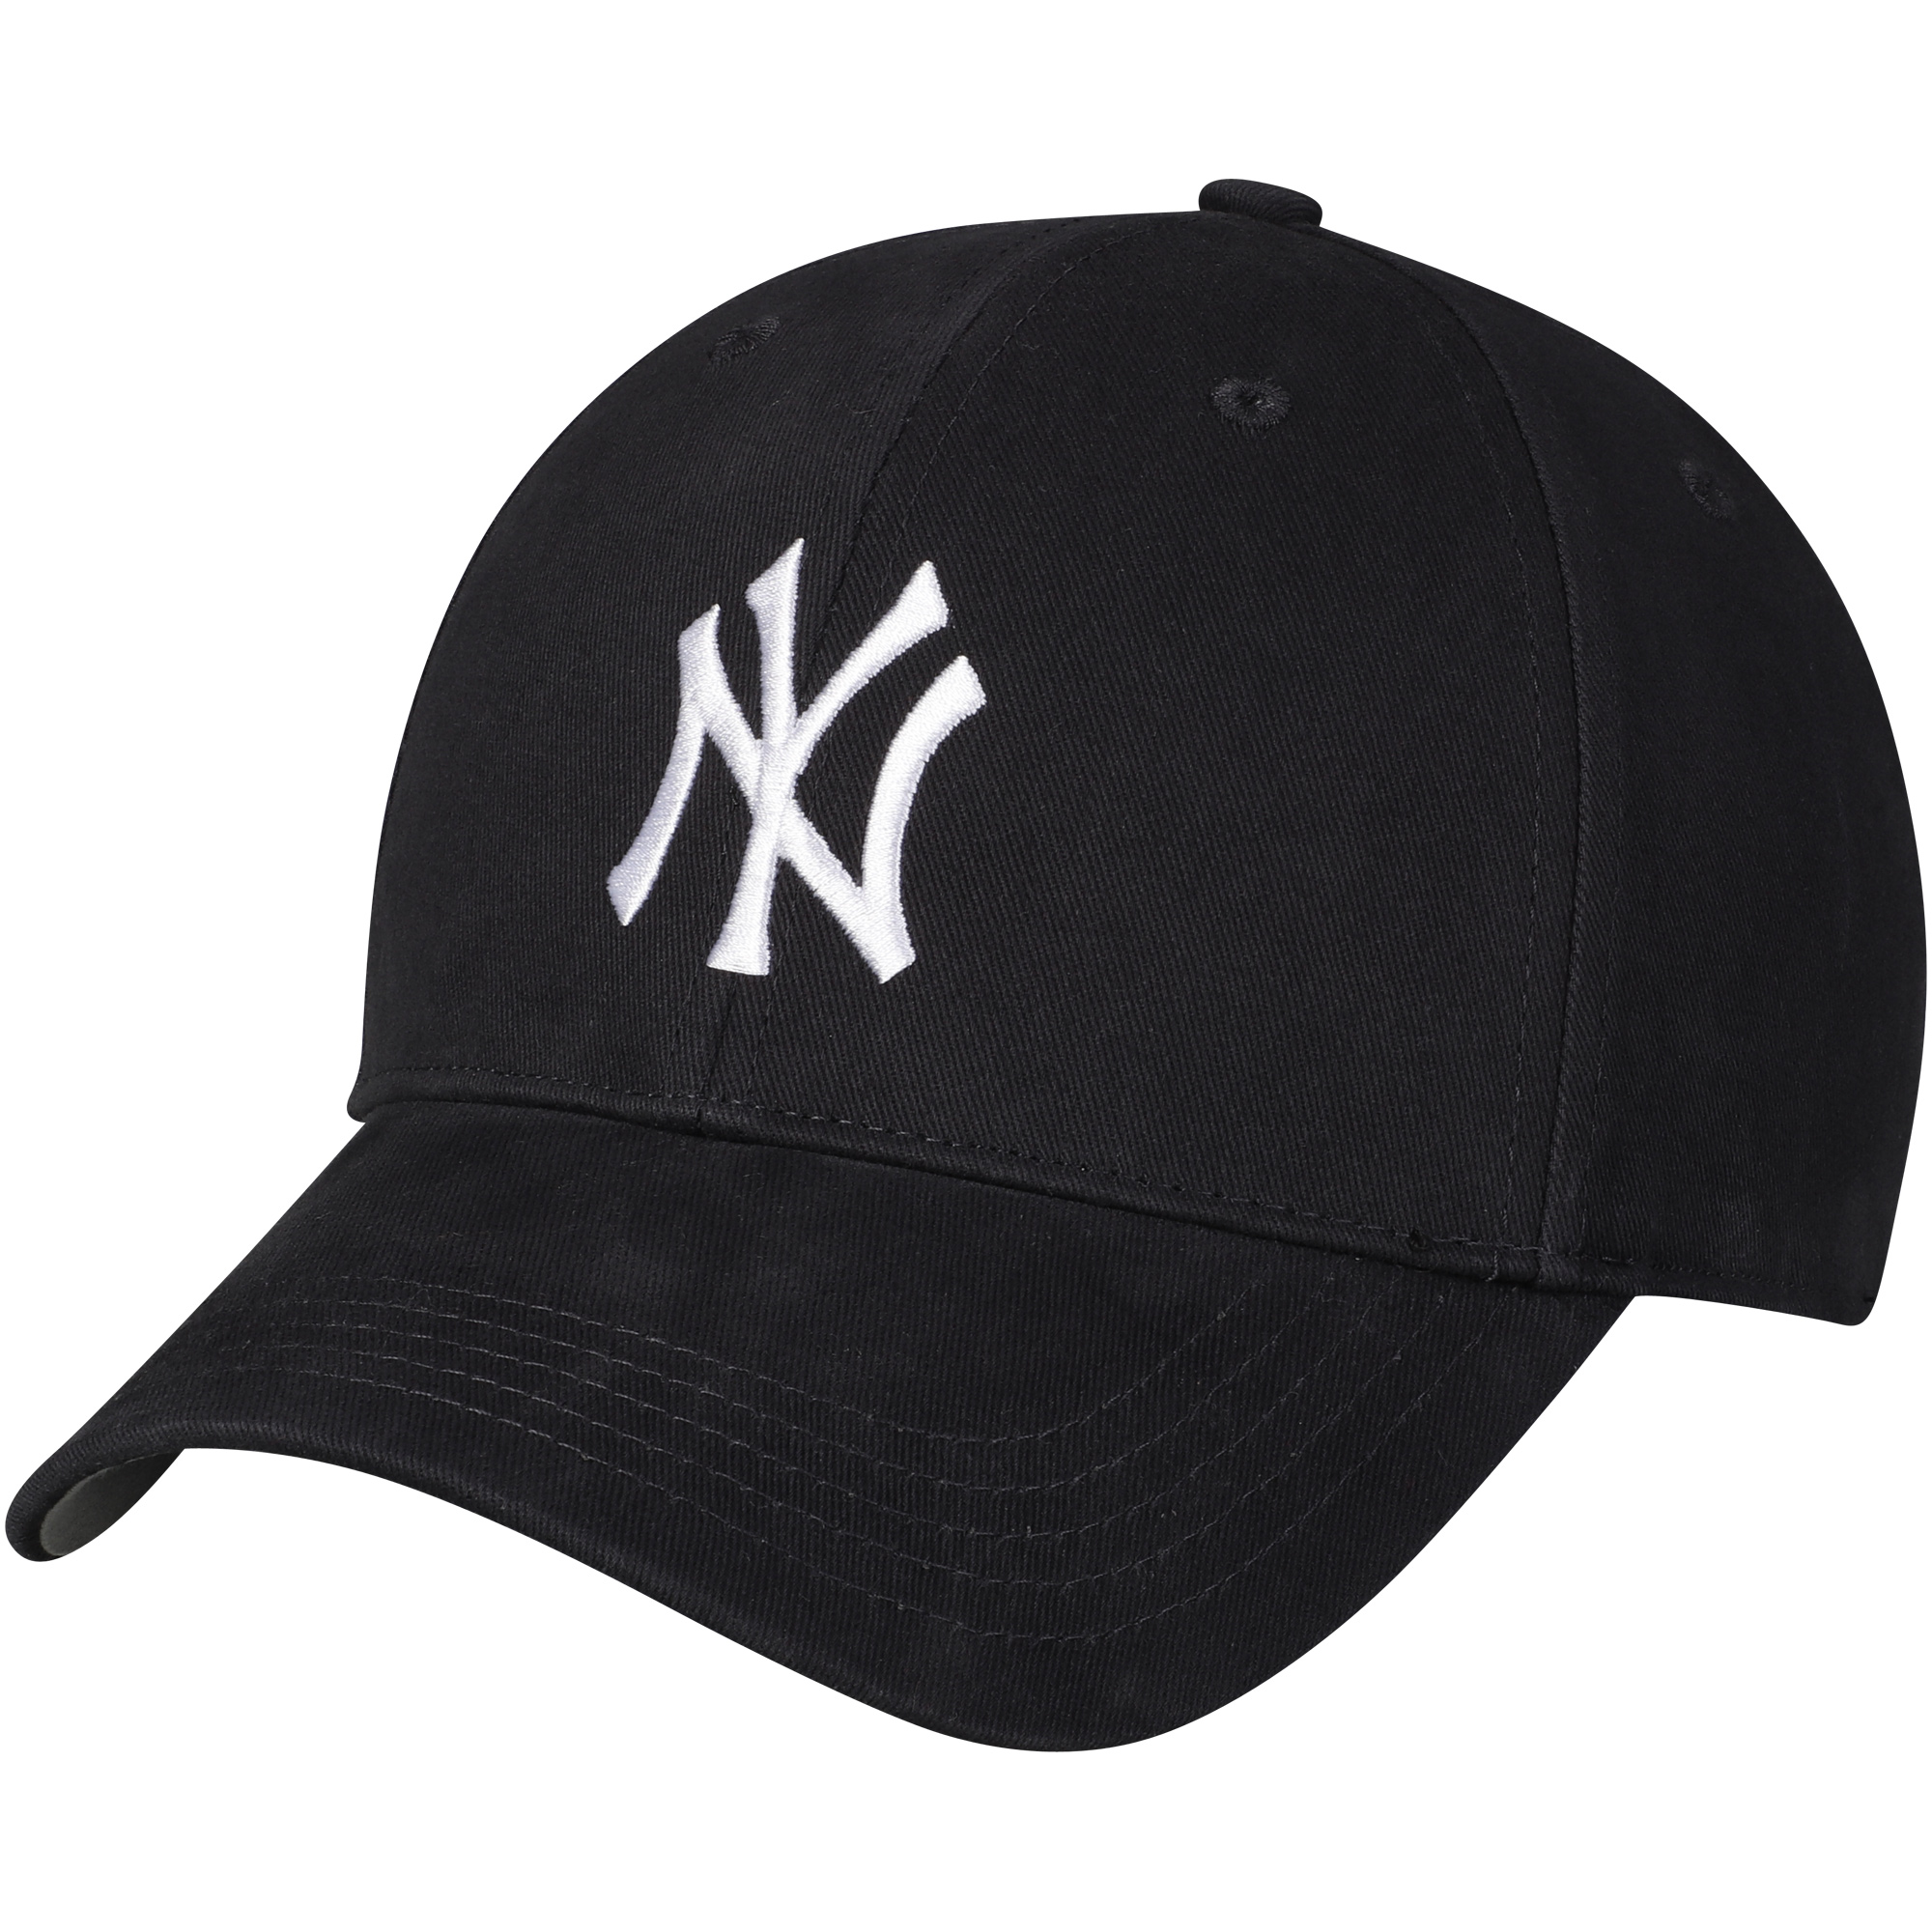 8911efdbd6a New York Yankees Team Shop - Walmart.com